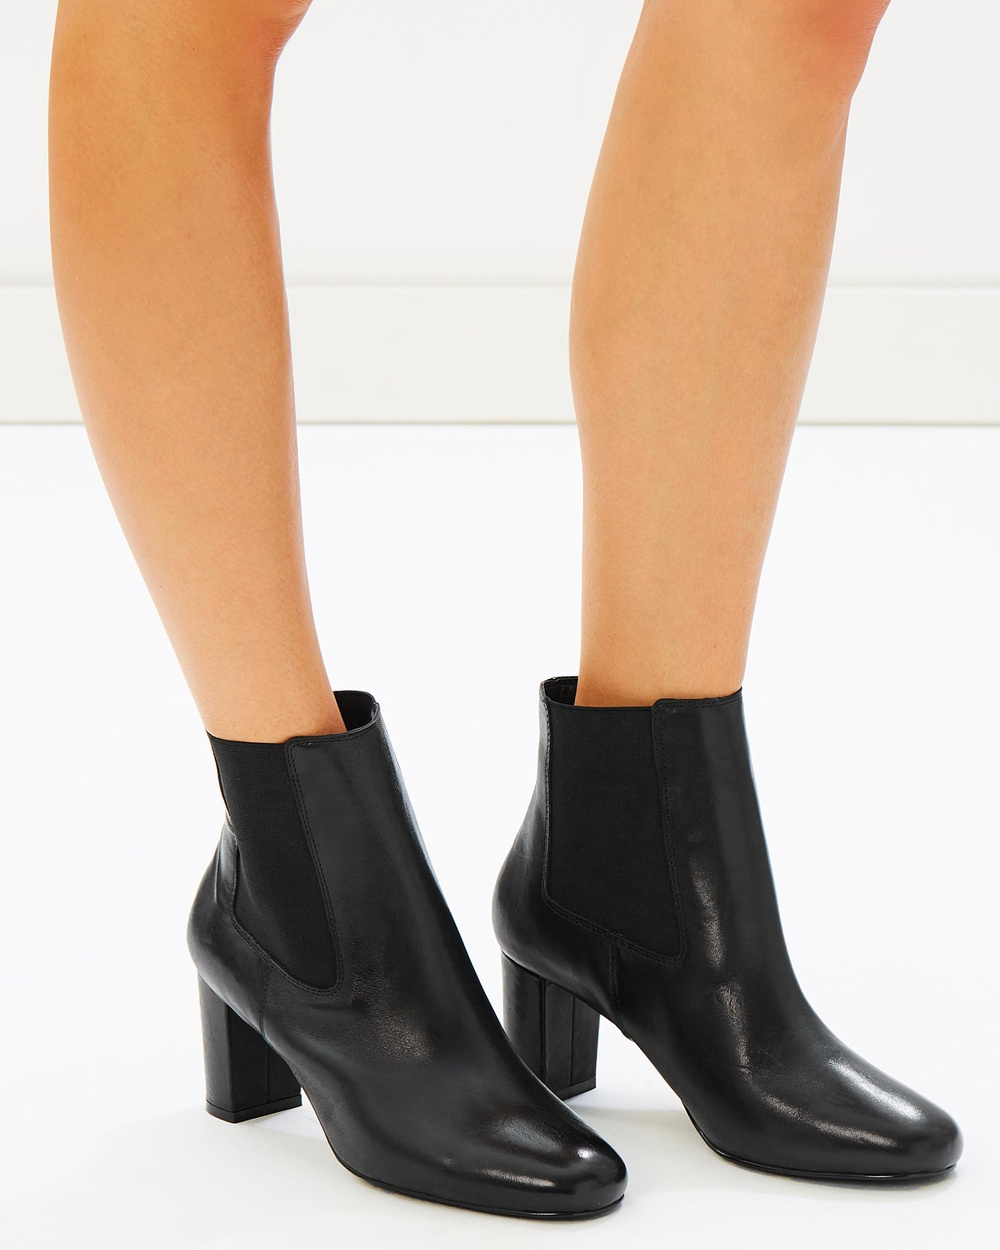 Atmos & Here ICONIC EXCLUSIVE Pamela Leather Ankle Boots All Pumps Black Leather ICONIC EXCLUSIVE Pamela Leather Ankle Boots